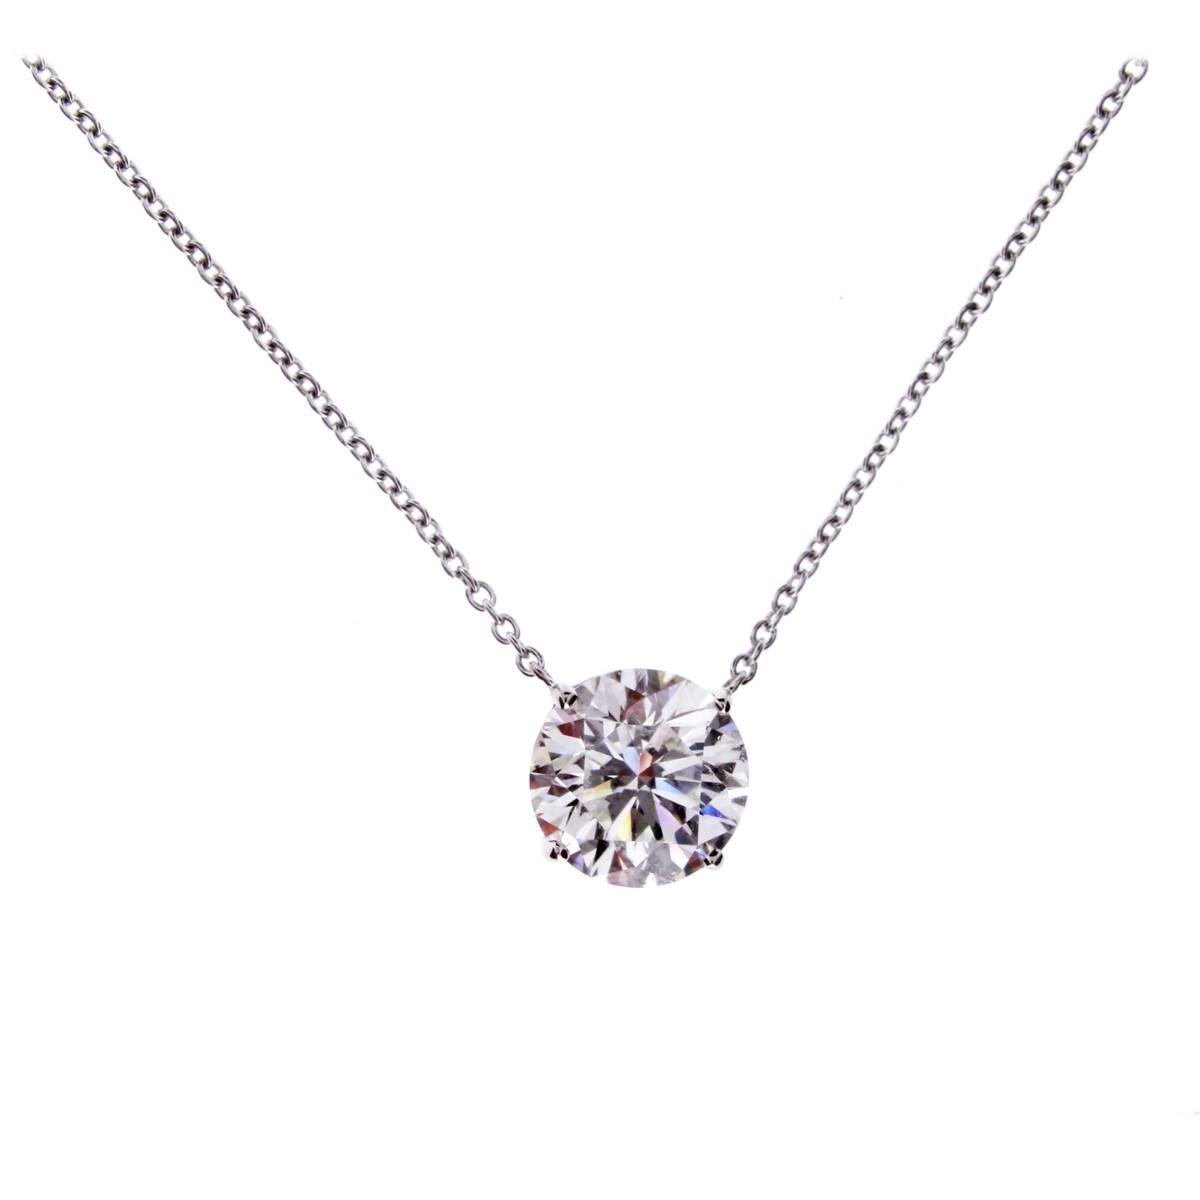 Graff Diamond Solitaire Necklace